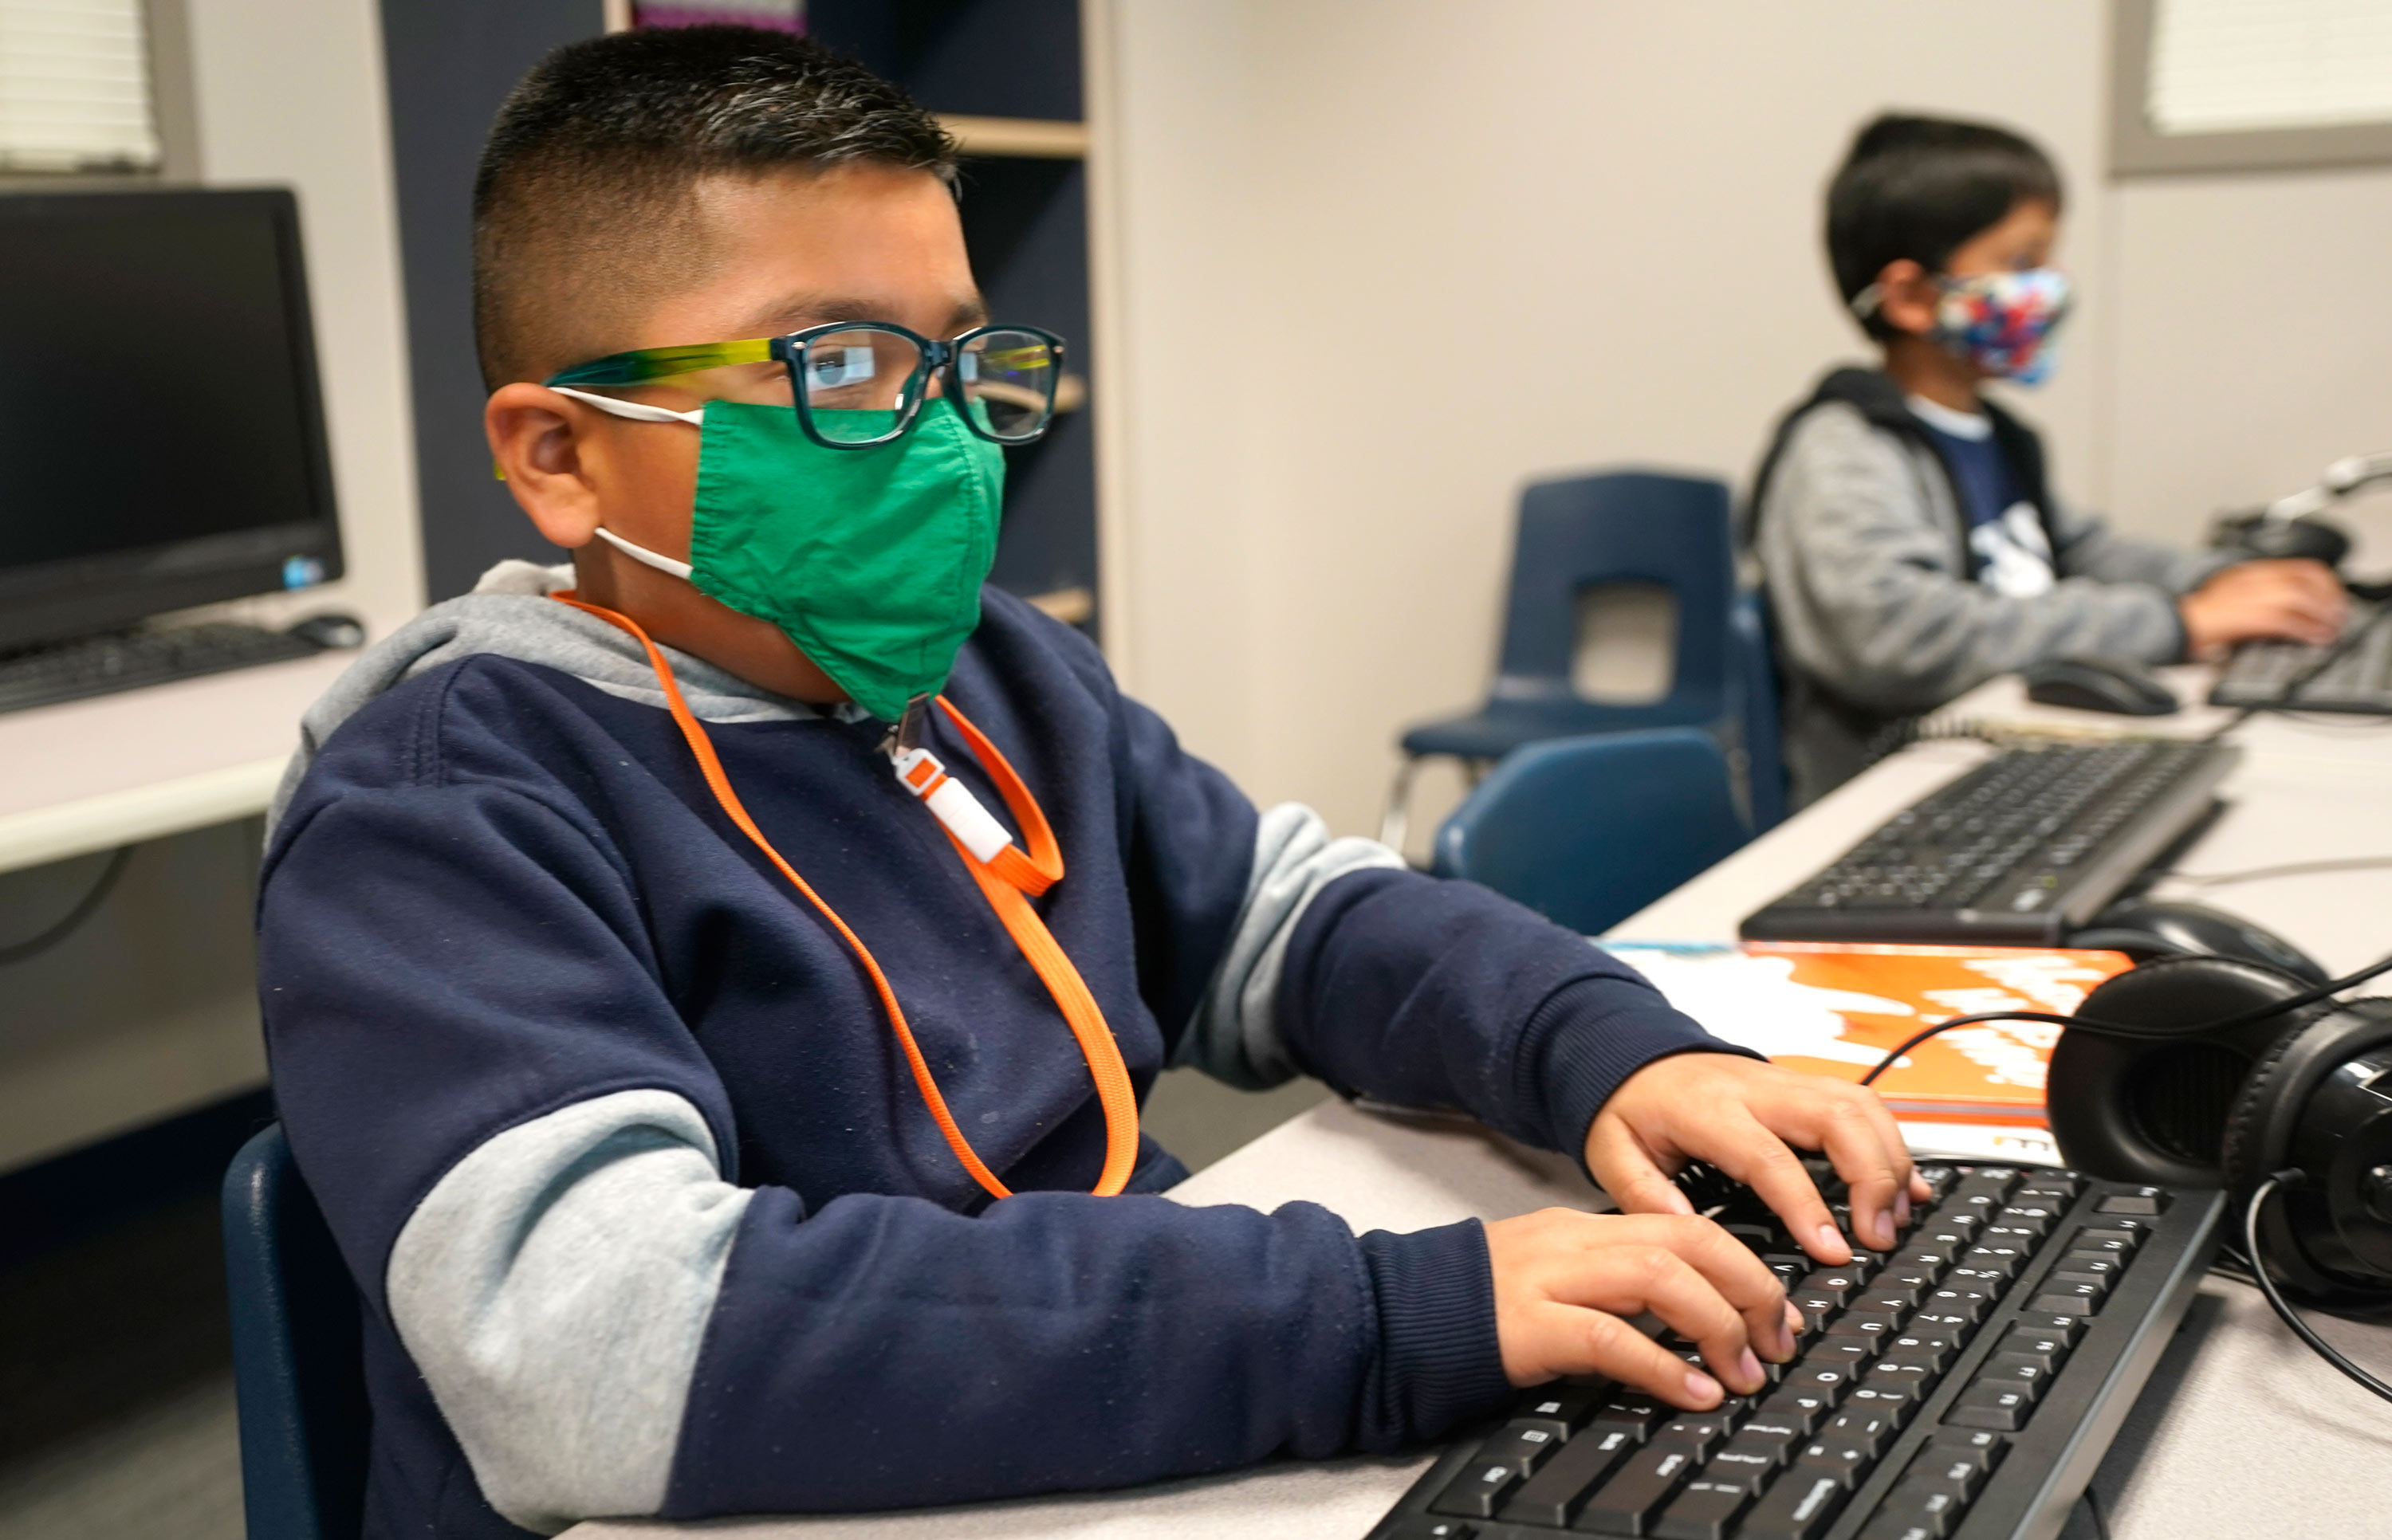 Students wearing face masks work on computers at Tibbals Elementary School in Murphy, Texas, on December 3, 2020.